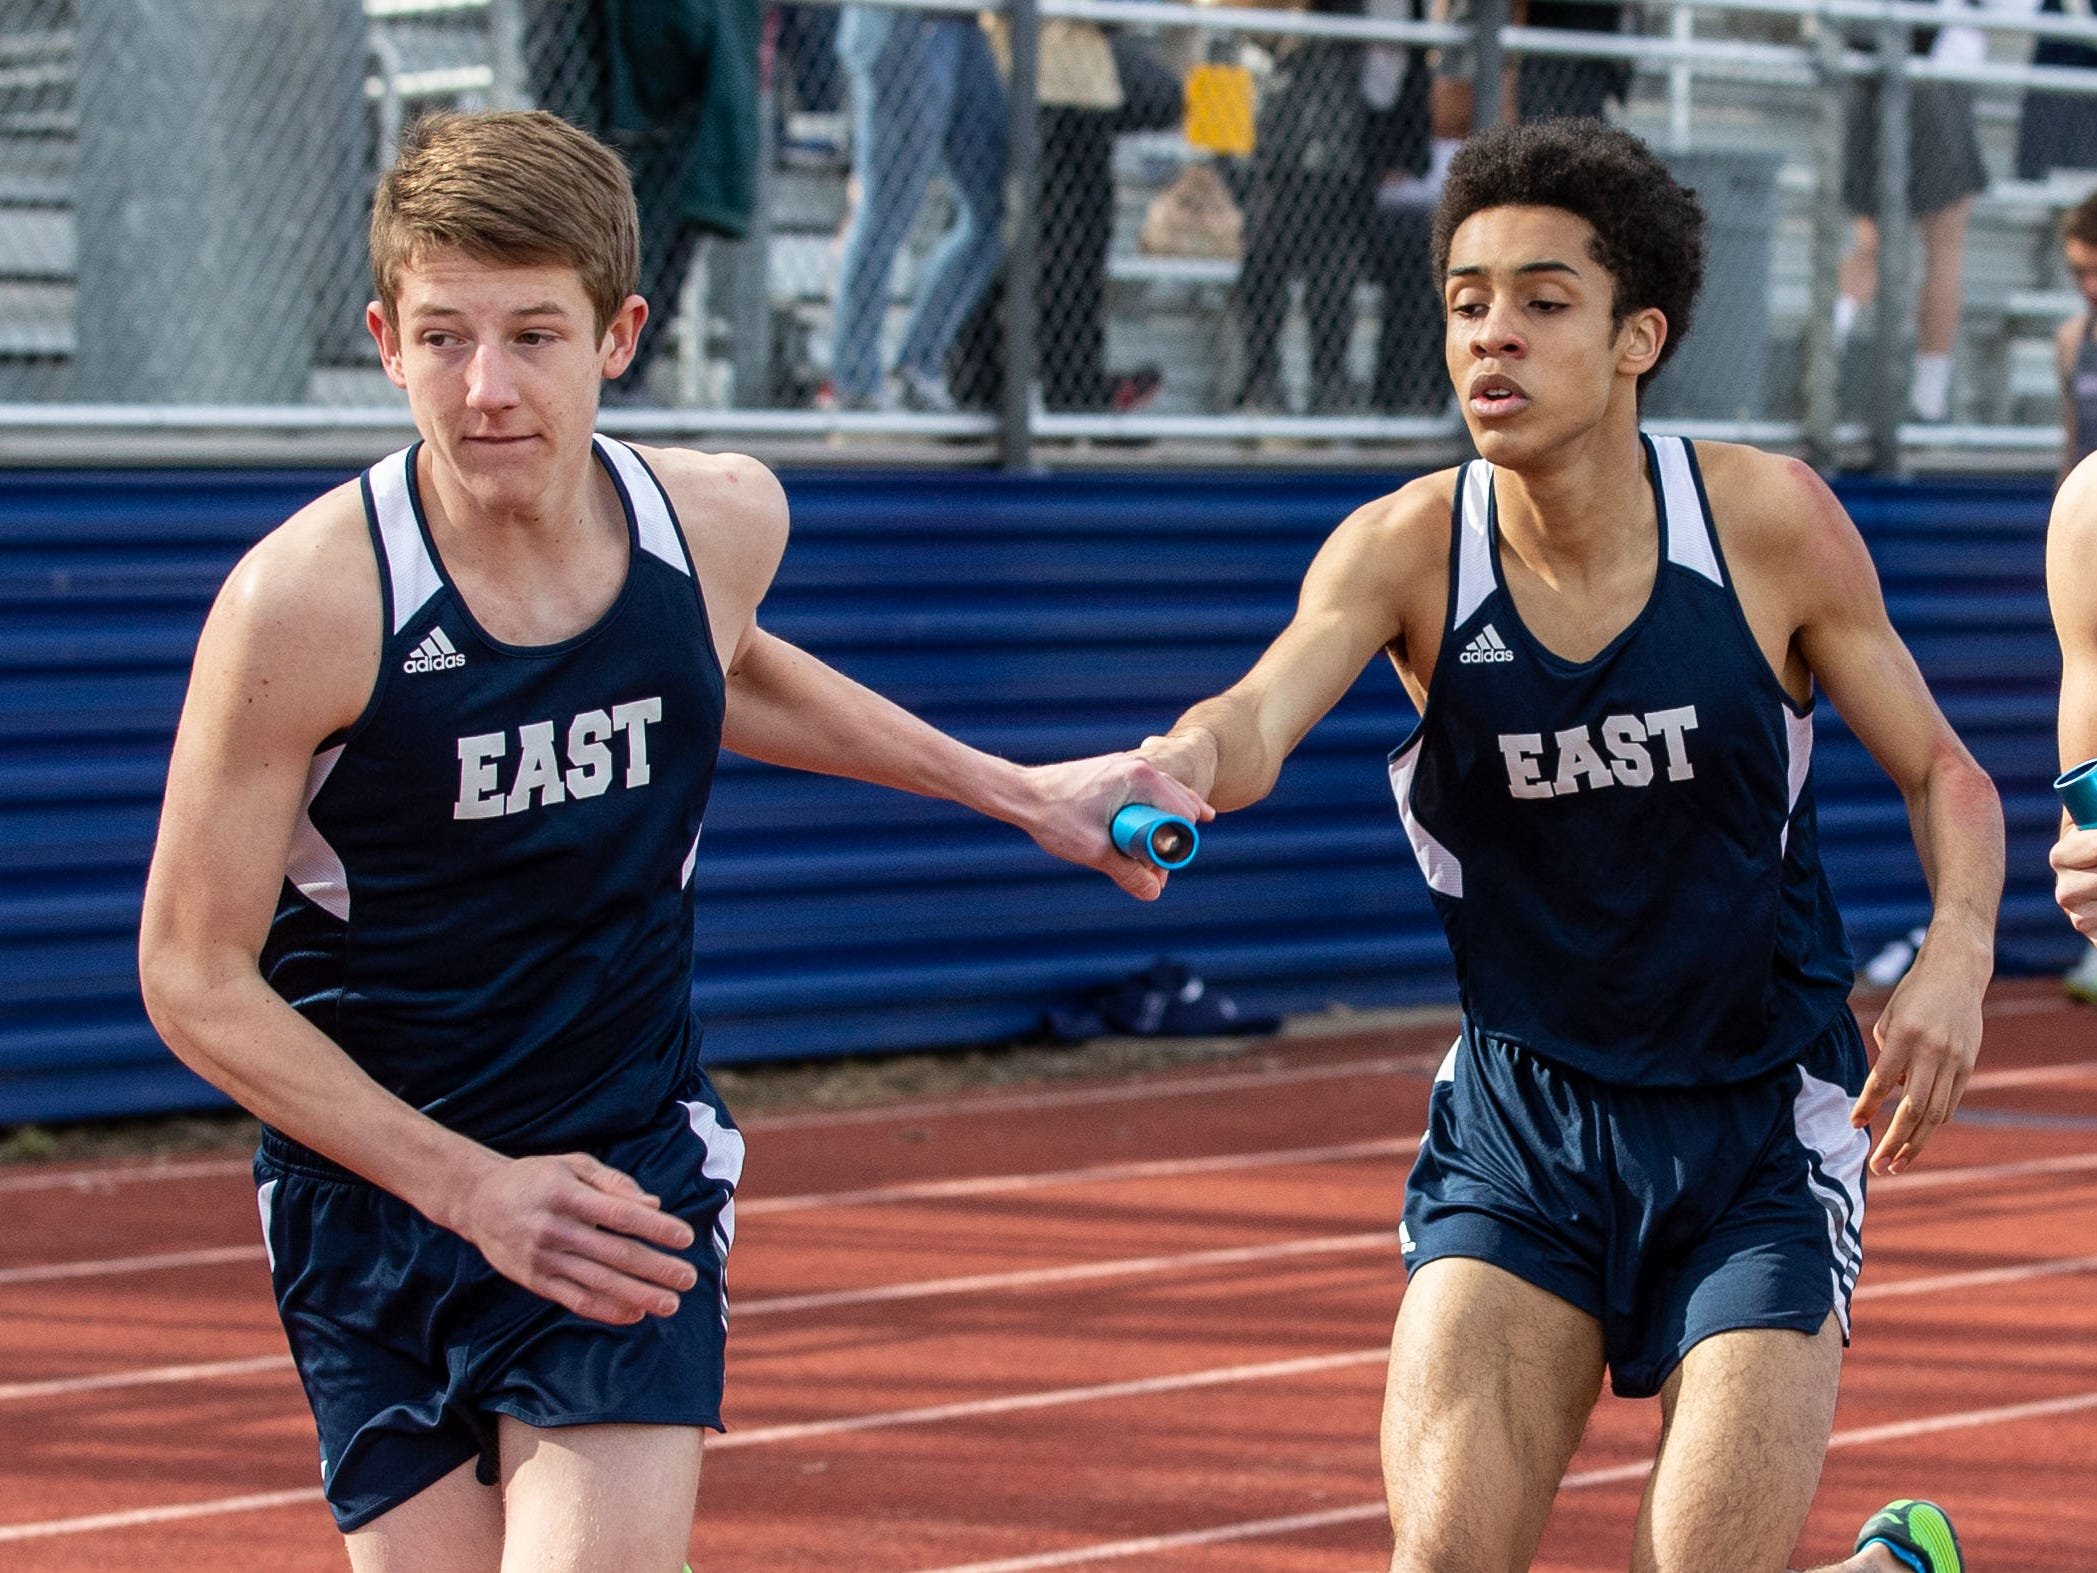 Brookfield East's Ian Szablewski (left) takes the baton from Langston Ford in the 4x800 meter relay during the Mike Gain 50th Annual Spartan Invitational at Brookfield East on Tuesday, April 9, 2019.